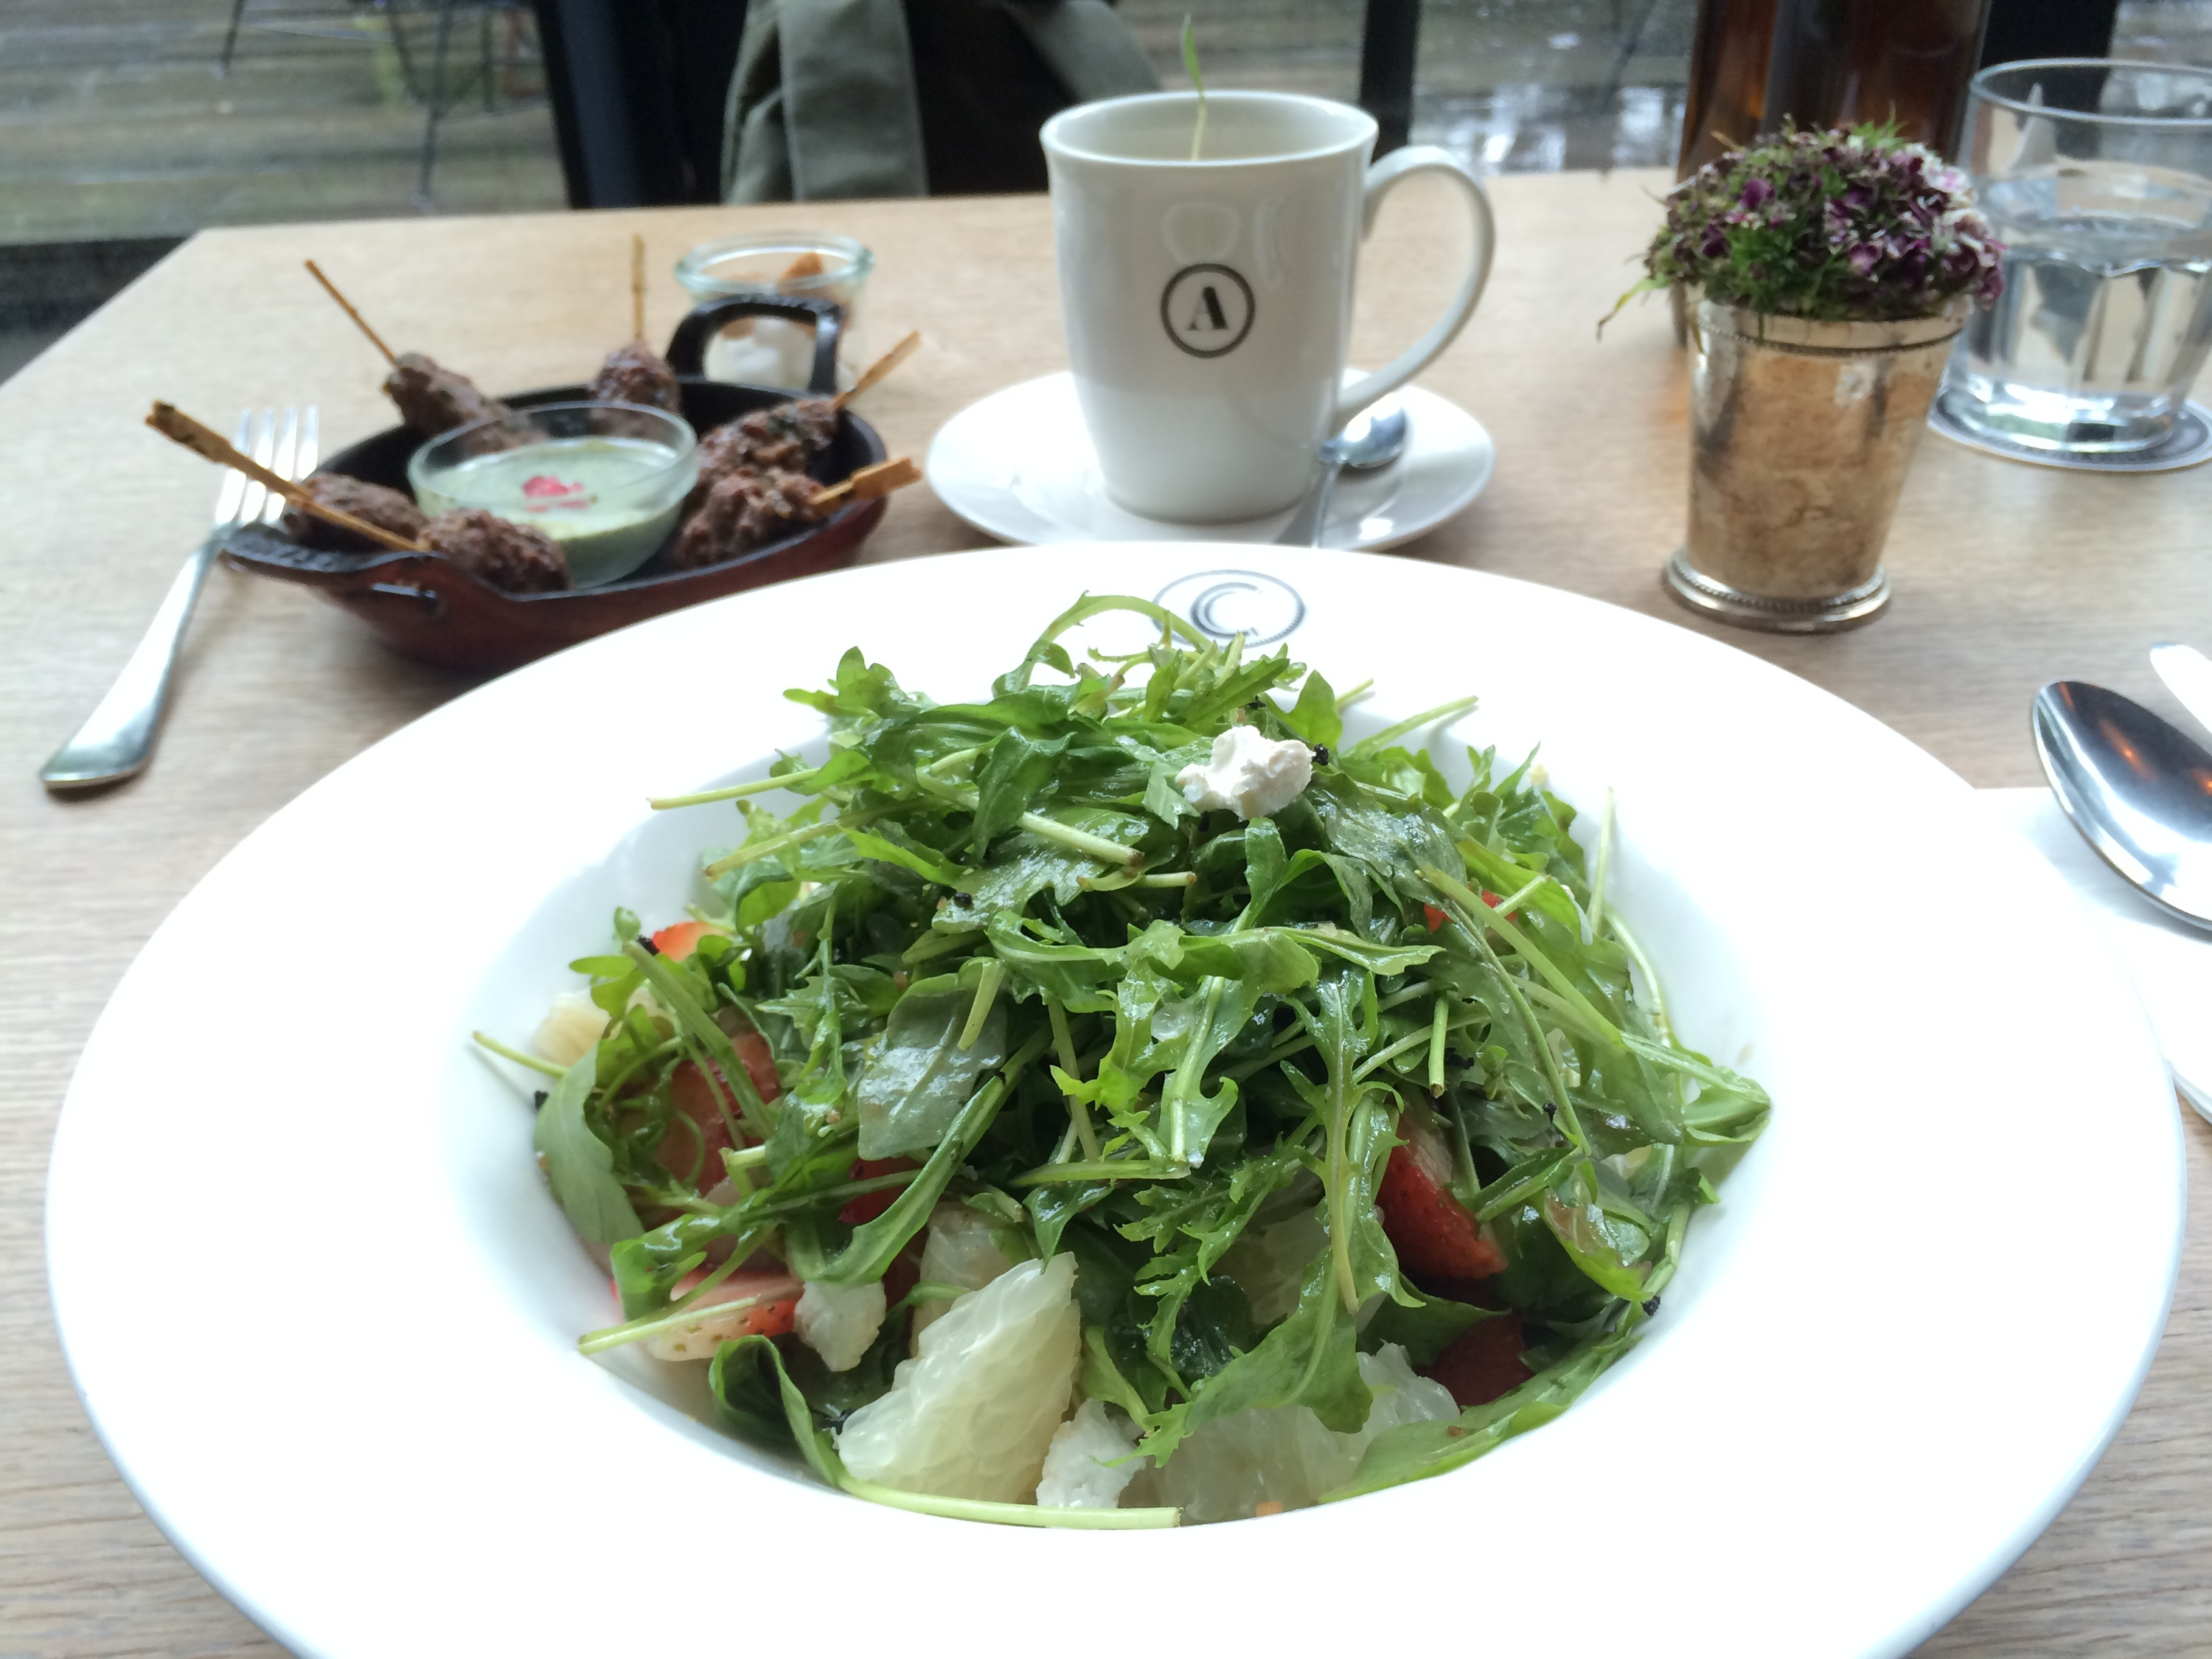 Acme strawberry, pomelo and rocket salad